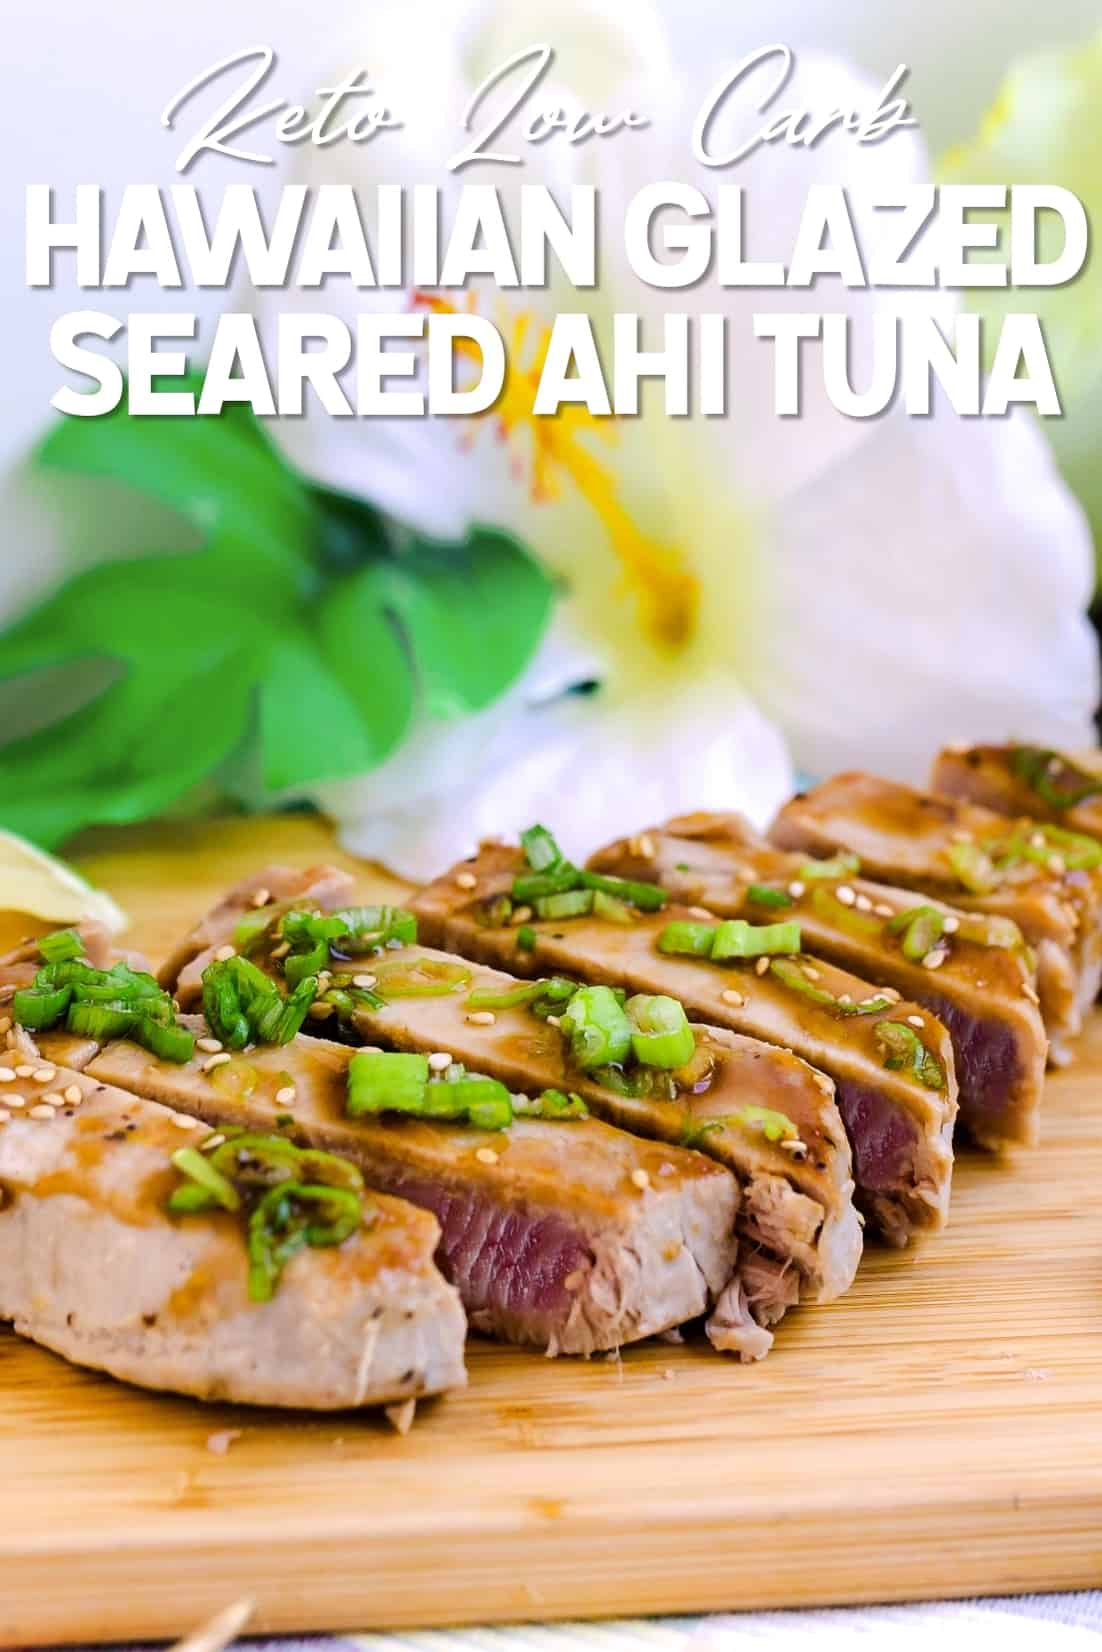 Hawaiian Glazed Seared Ahi Tuna